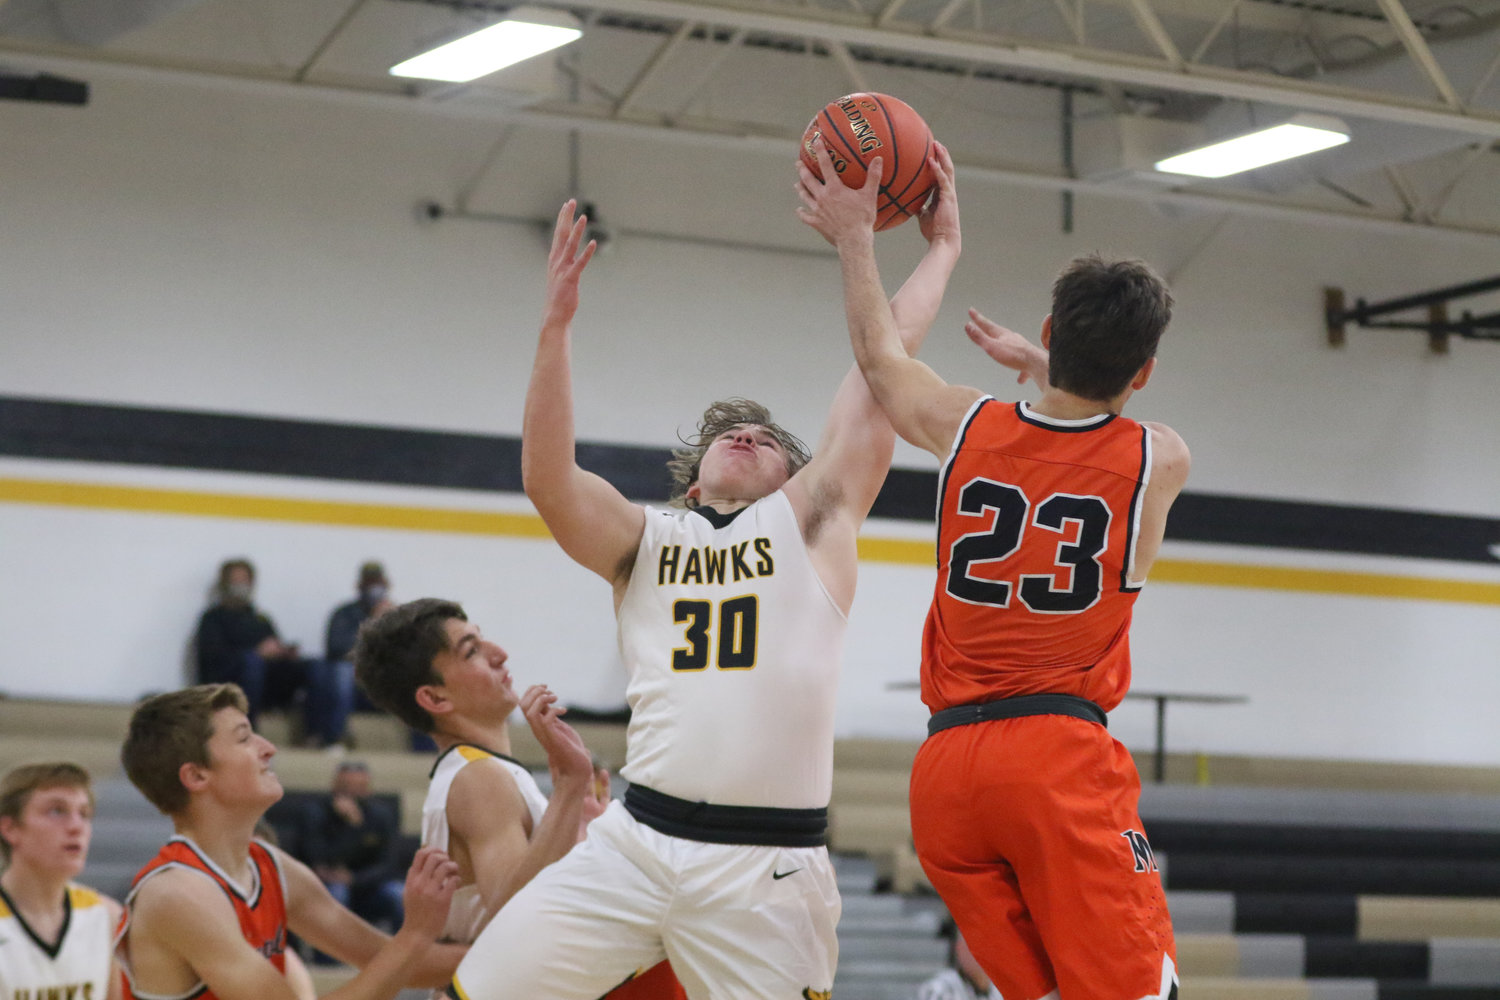 Mid-Prairie's Justice Jones fights for a rebound during the first quarter of a scrimmage with Mediapolis in Wellman on Saturday, November 21.